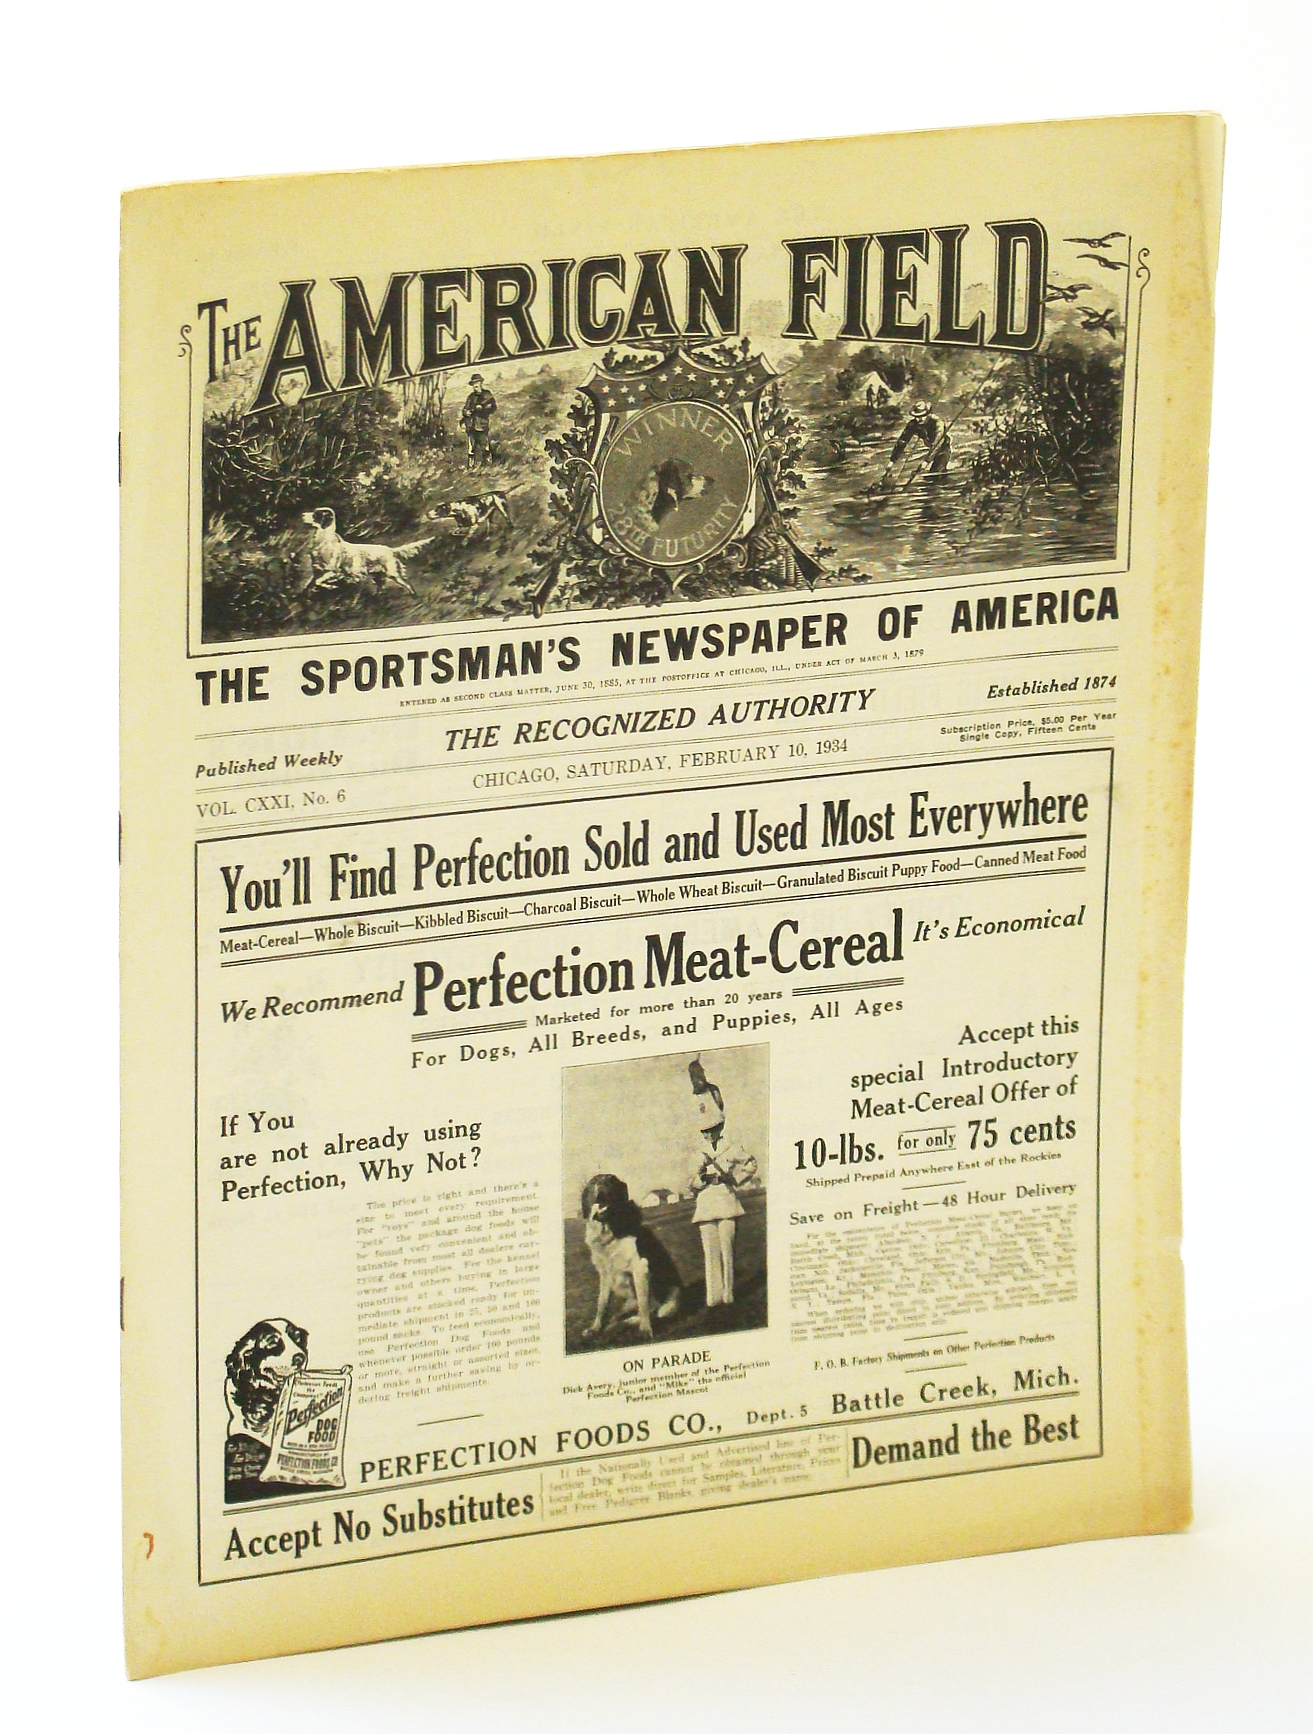 Image for The American Field - The Sportsman's Newspaper [Magazine] of America, February (Feb.) 10, 1934, Vol. CXXI, No. 6 - Up and Down the Stubble Field